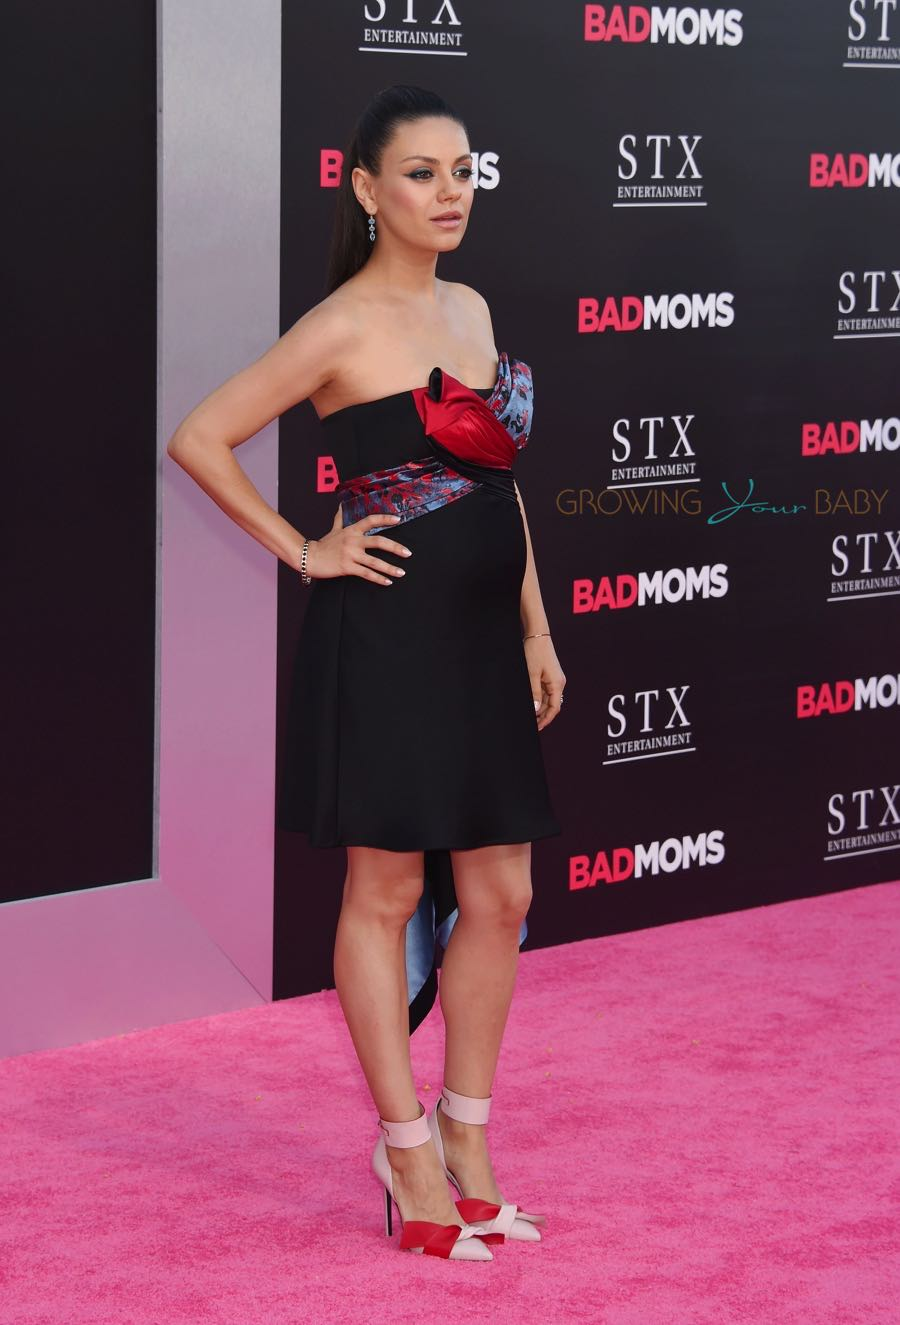 Pregnant Mila Kunis walks the red carpet at the  'Bad Moms' LA Premiere